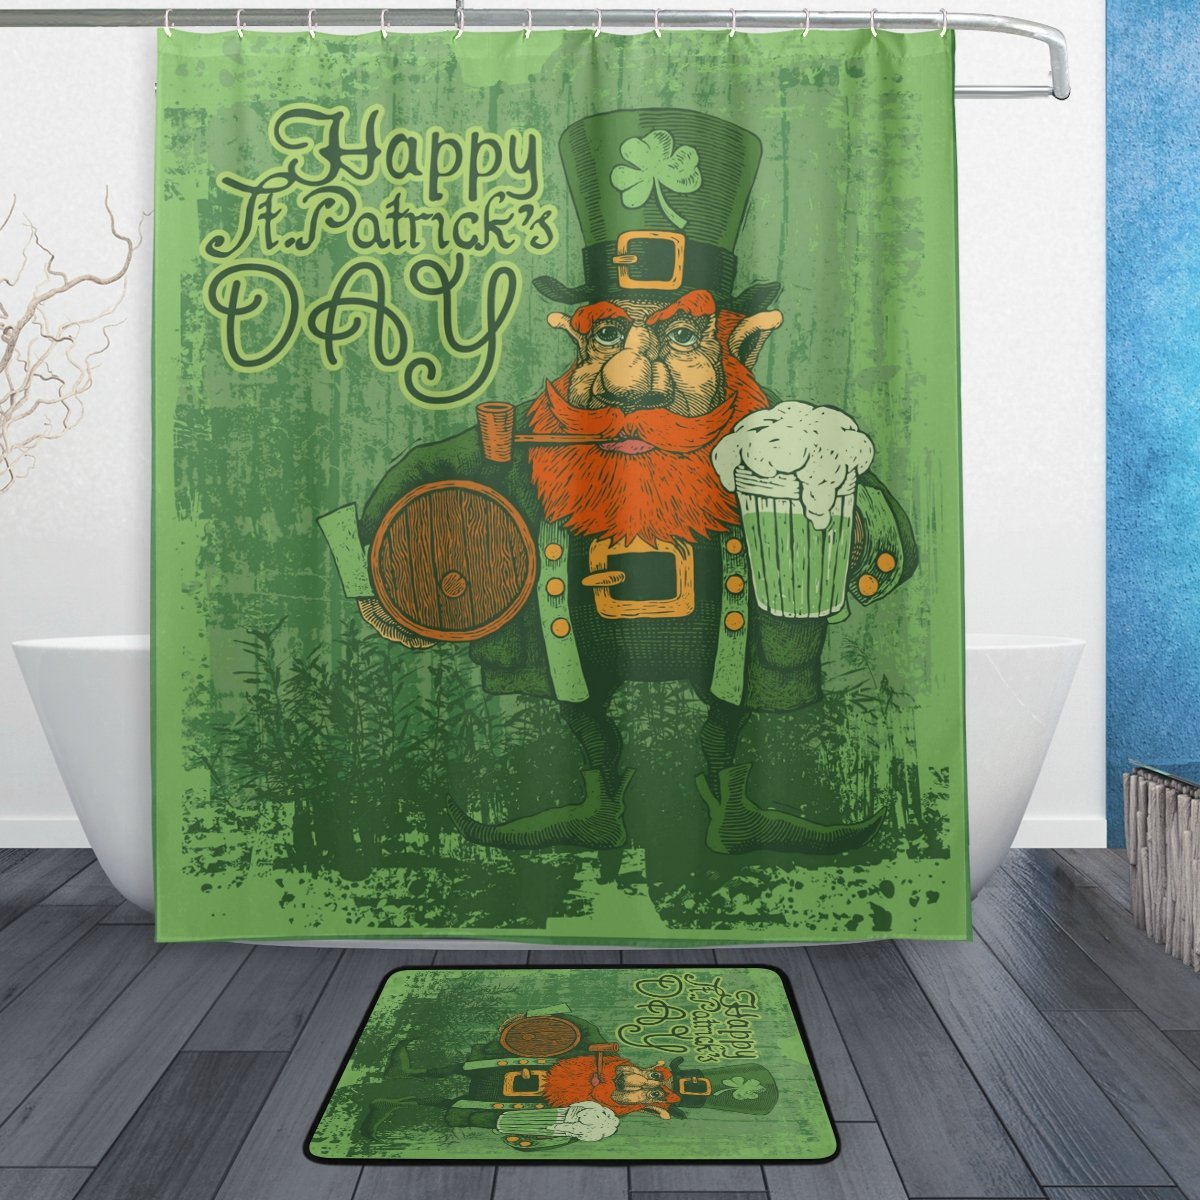 Retro Happy Saint Patricks Day Shower Curtain and Mat Set, Vintage Style Lucky Clover Waterproof Fabric Bathroom Curtain